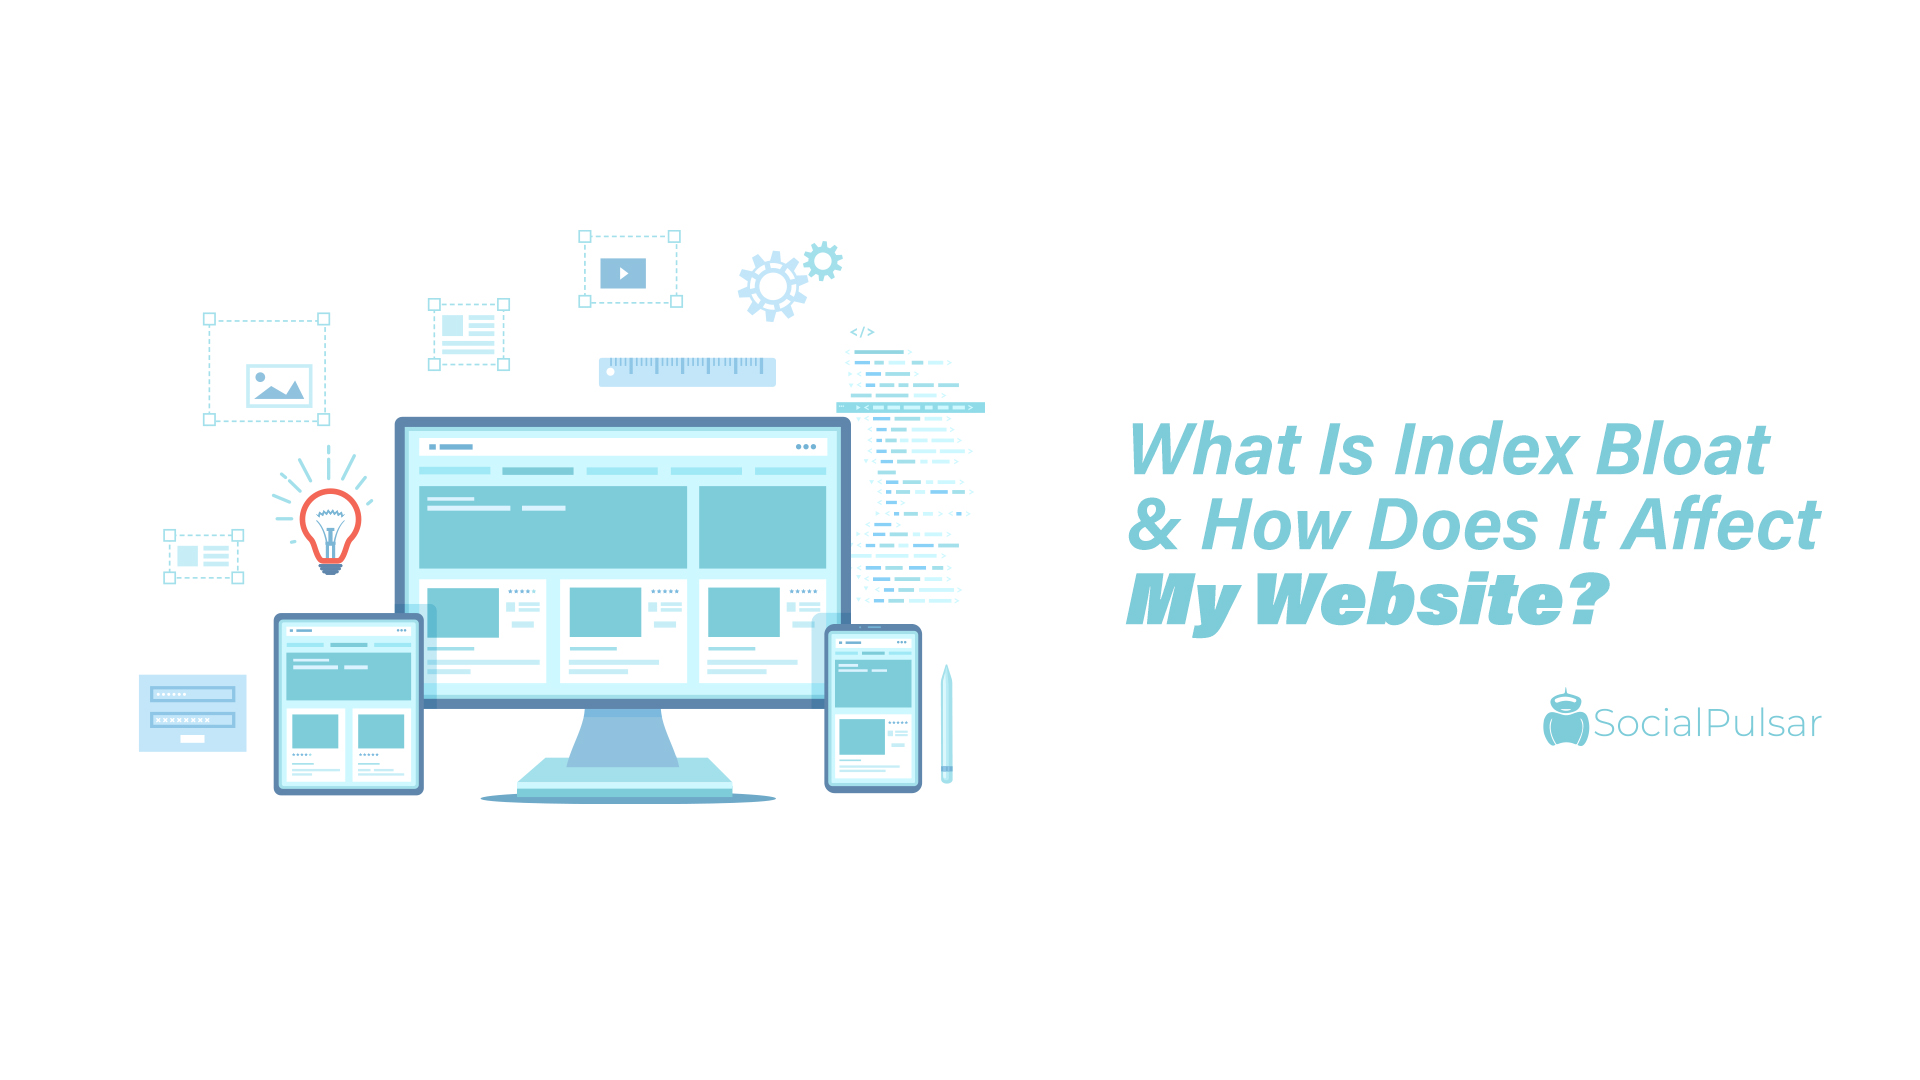 What Is Index Bloat & How Does It Affect My Website